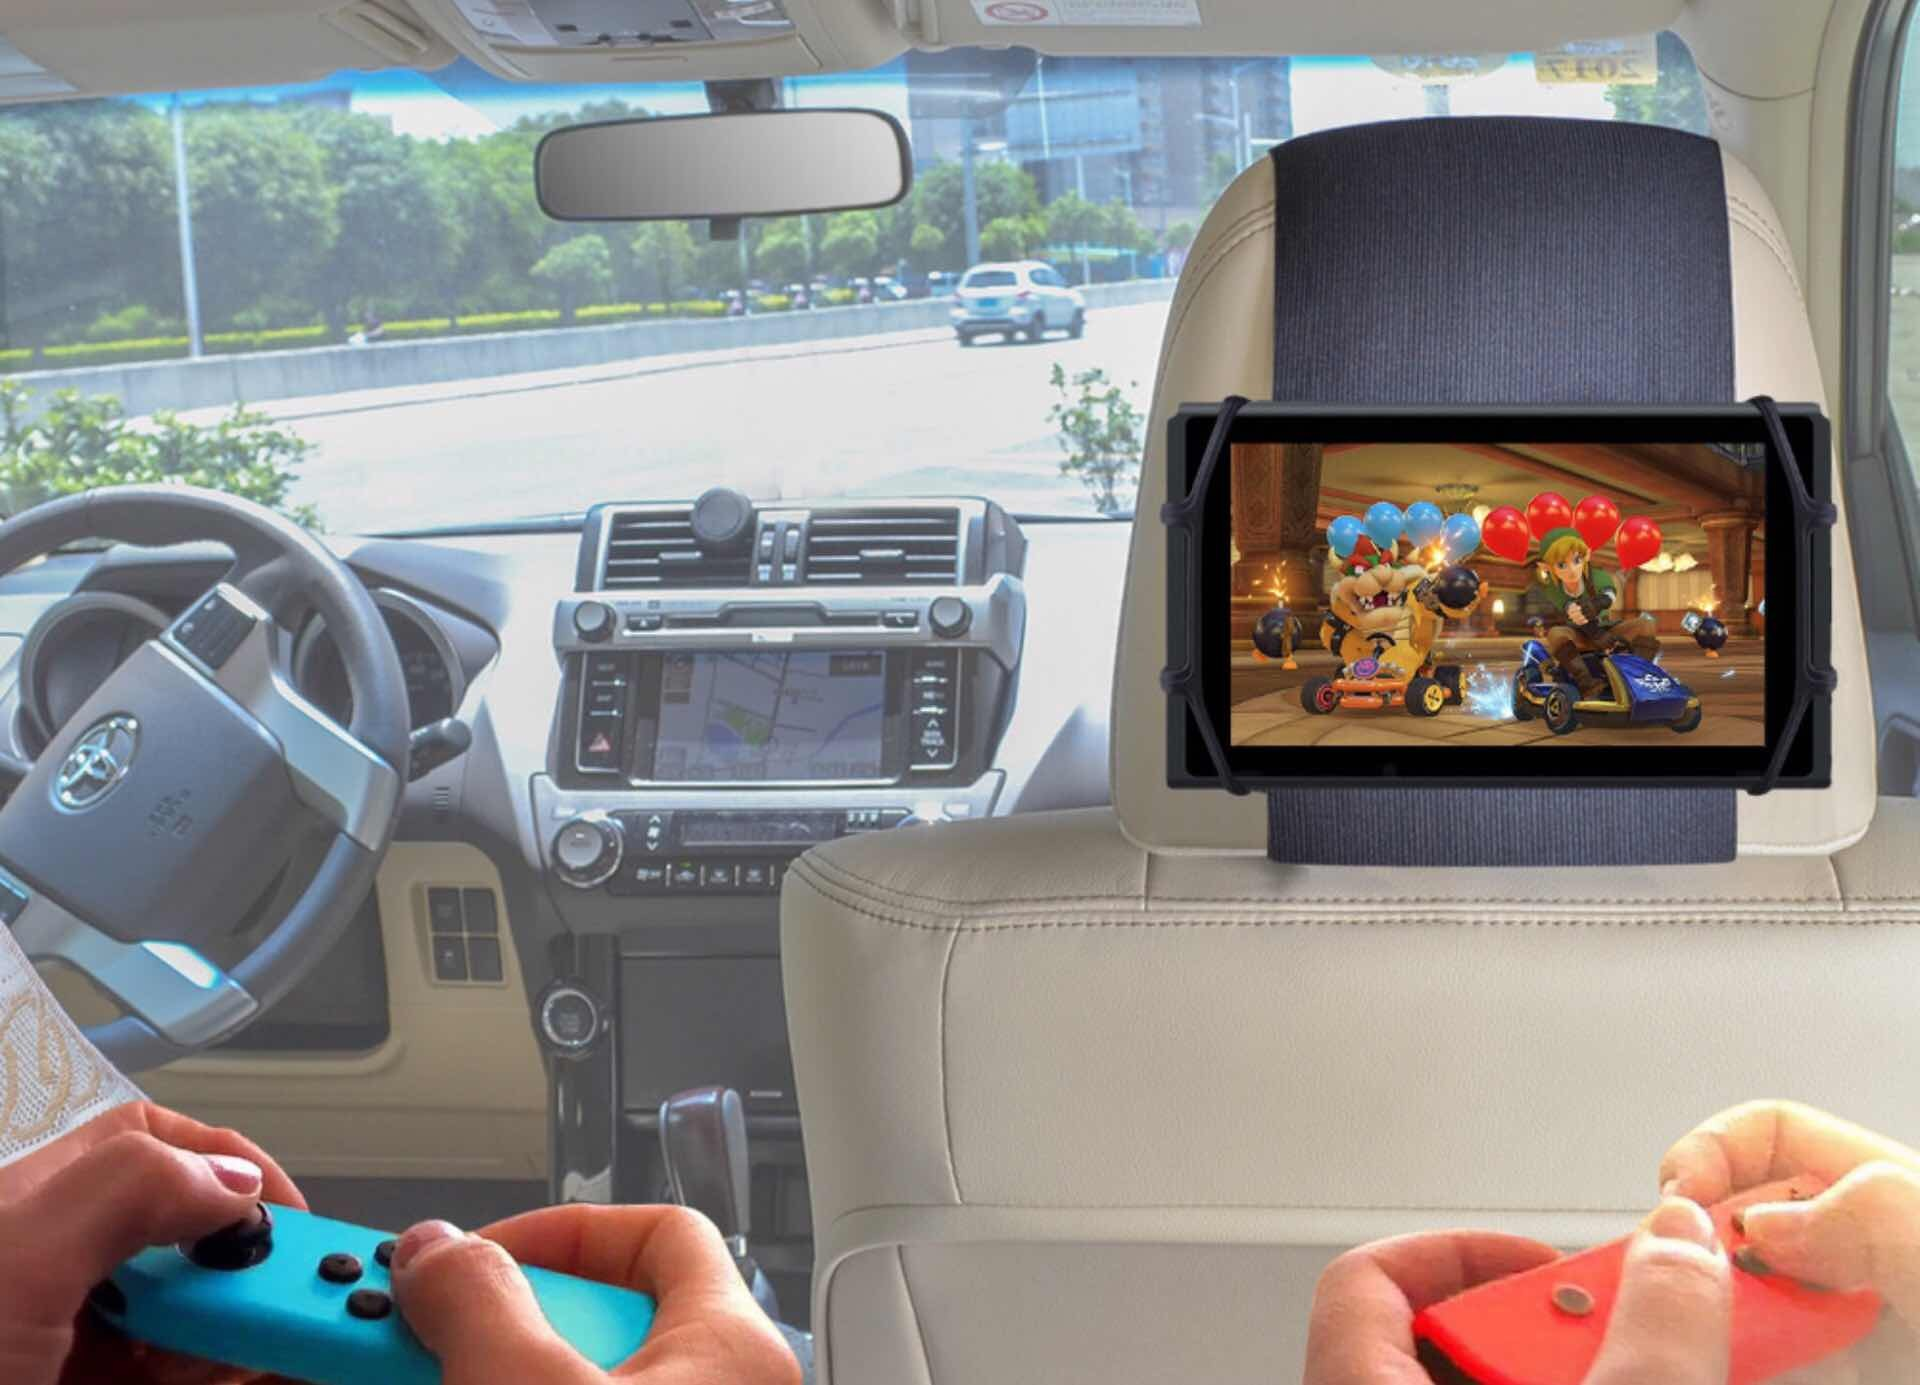 tfy-headrest-mount-for-nintendo-switch-2